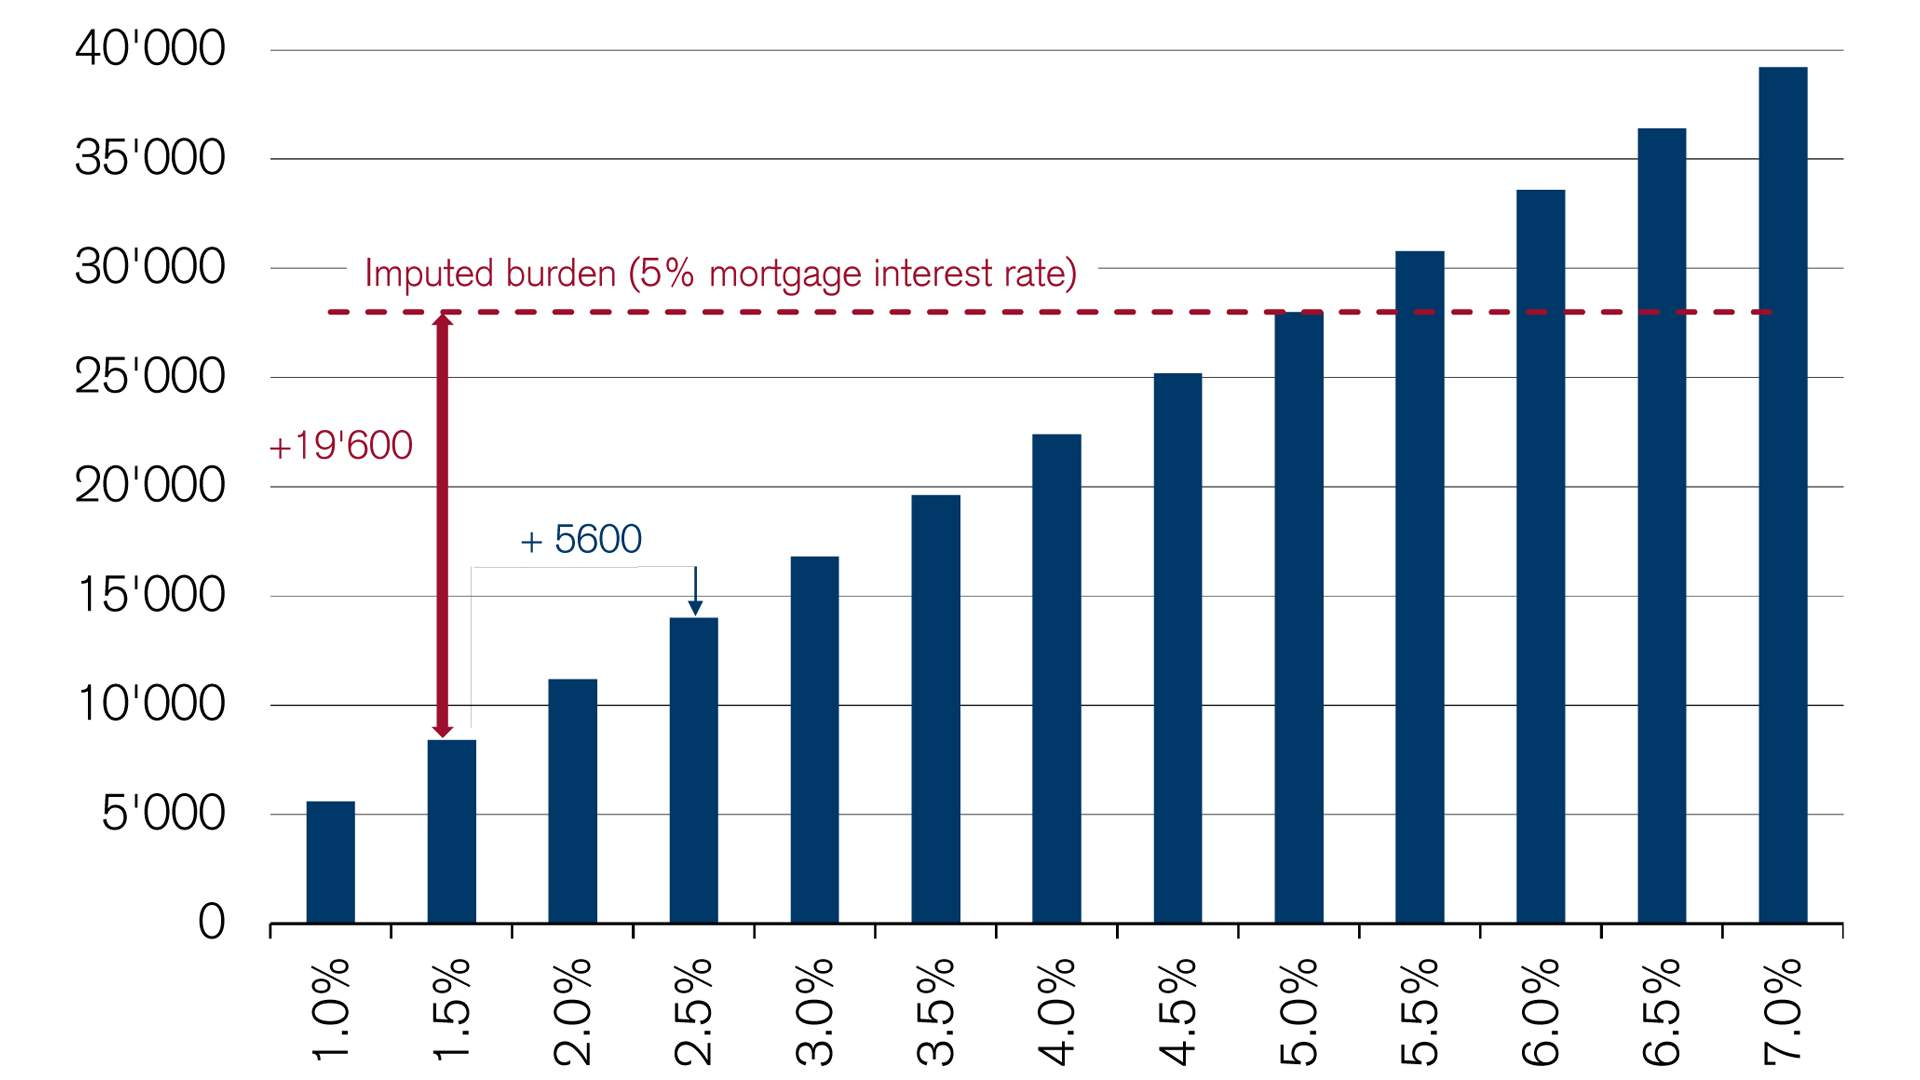 affordability-based on-mortgage-interest-rate